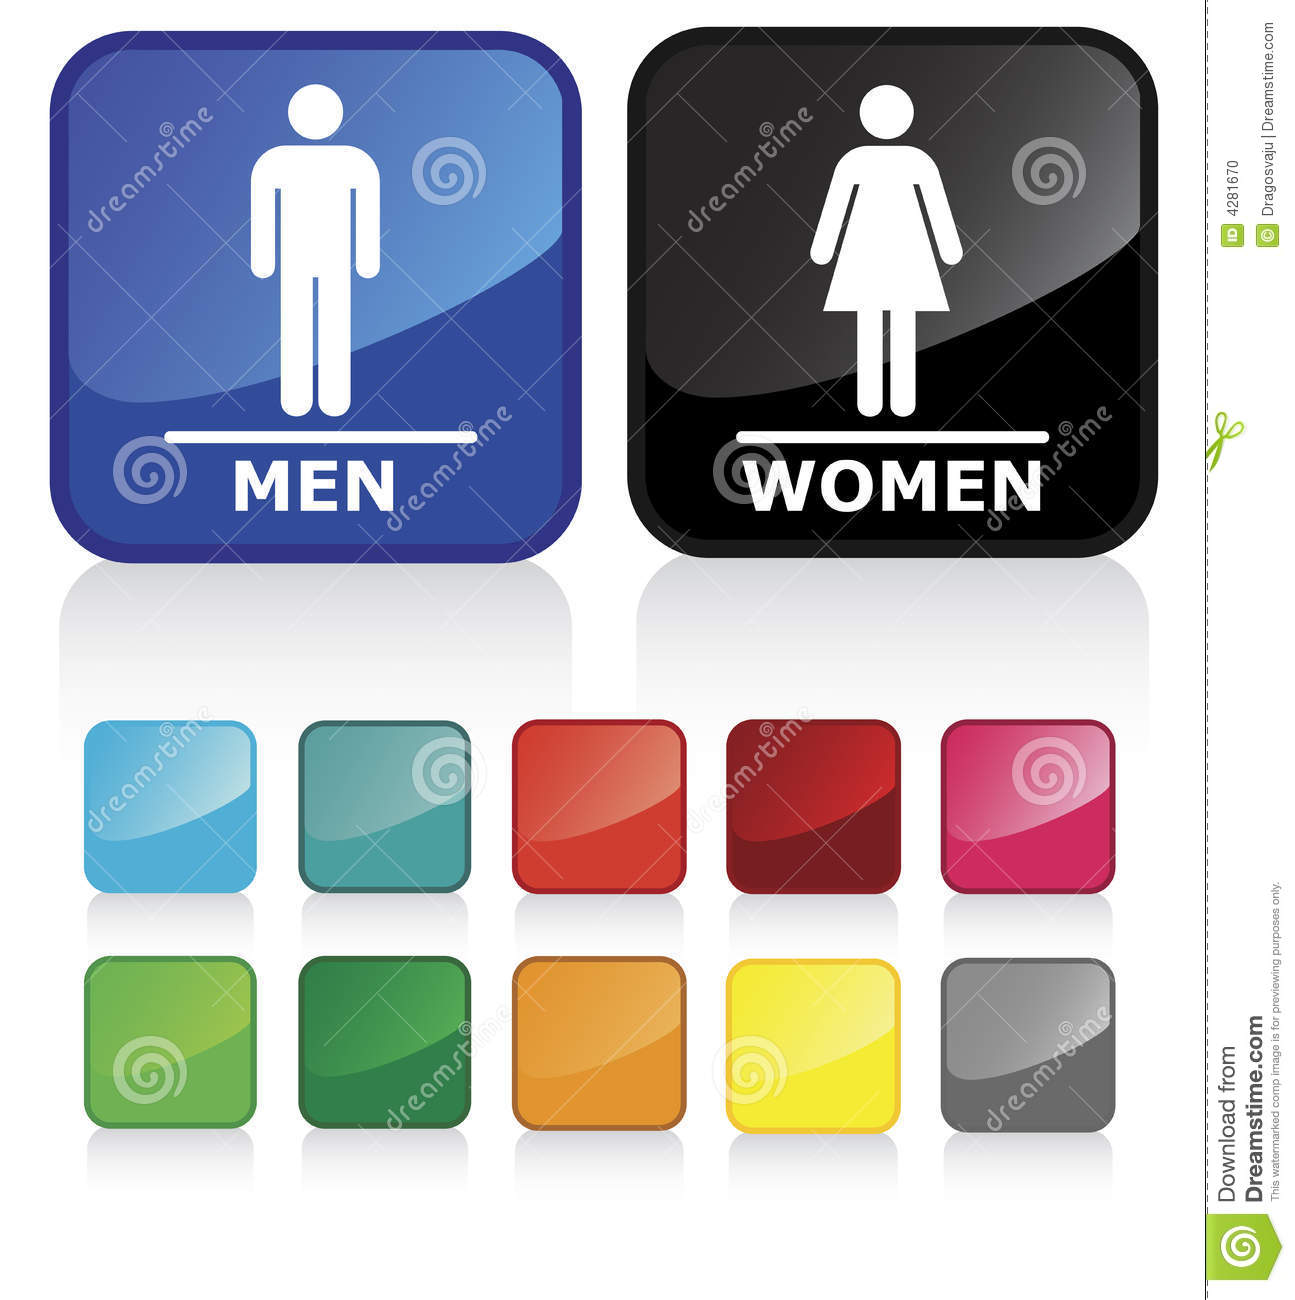 Bathroom Signs To Download bathroom signs 2 stock photo - image: 4281670